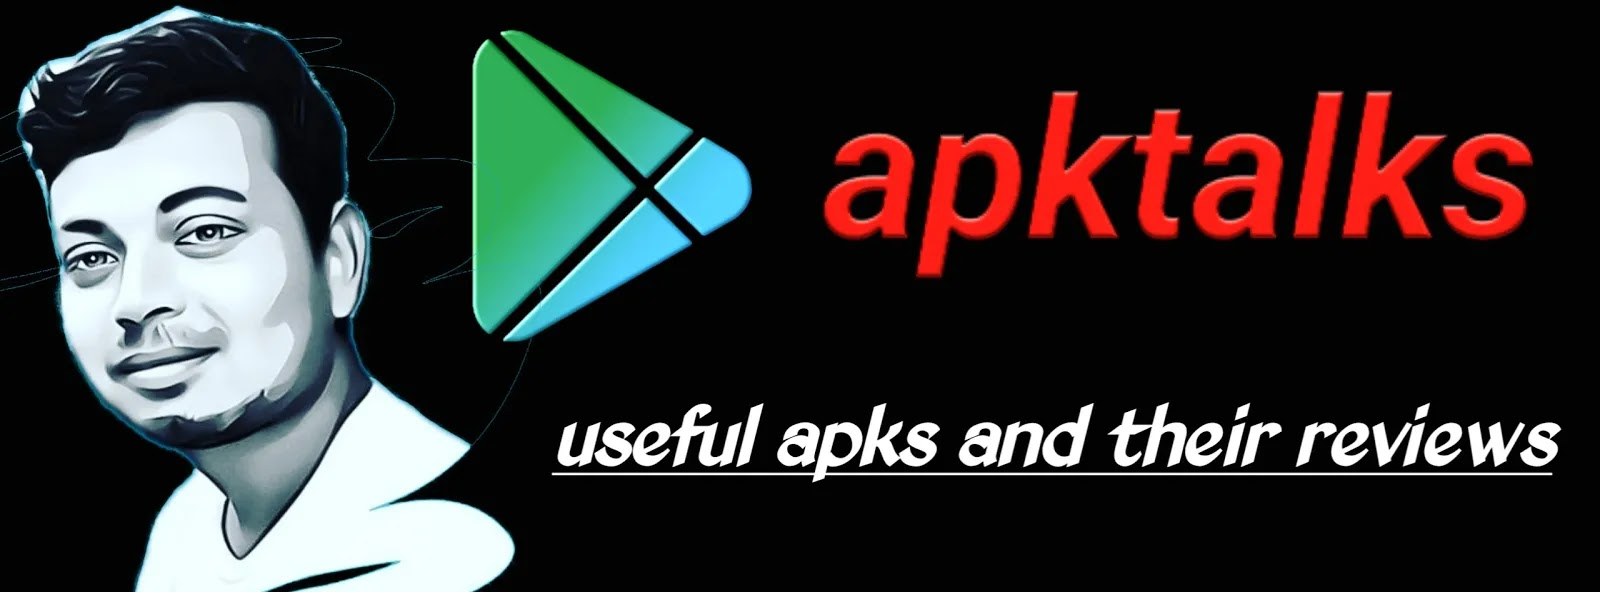 apktalks|Useful apps and their reviews